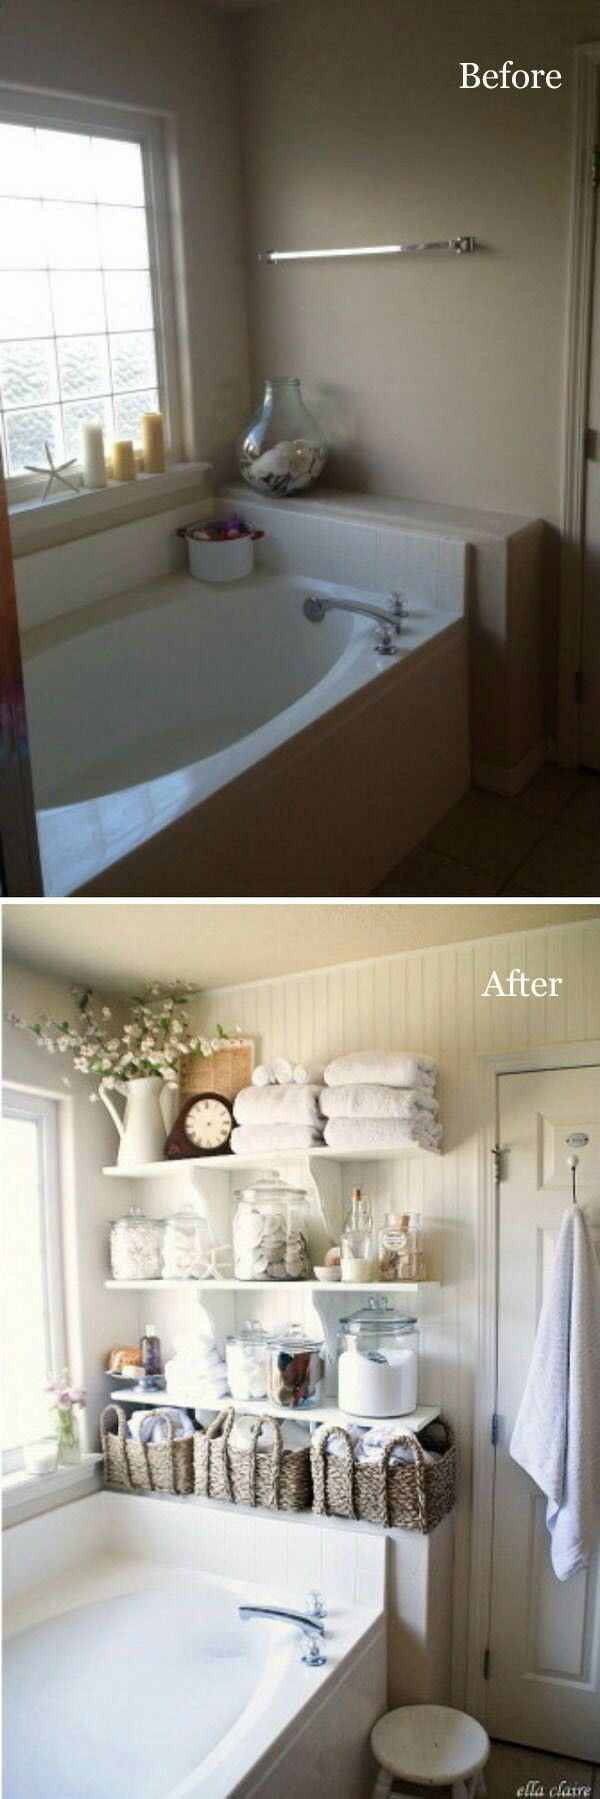 Take Advantage of Empty Walls with DIY Bathroom Linen Shelves. Take advantage of empty walls by adding built-in shelves to your bathroom to store towels and all of your bathroom essentials. via ellaclaireinspired.